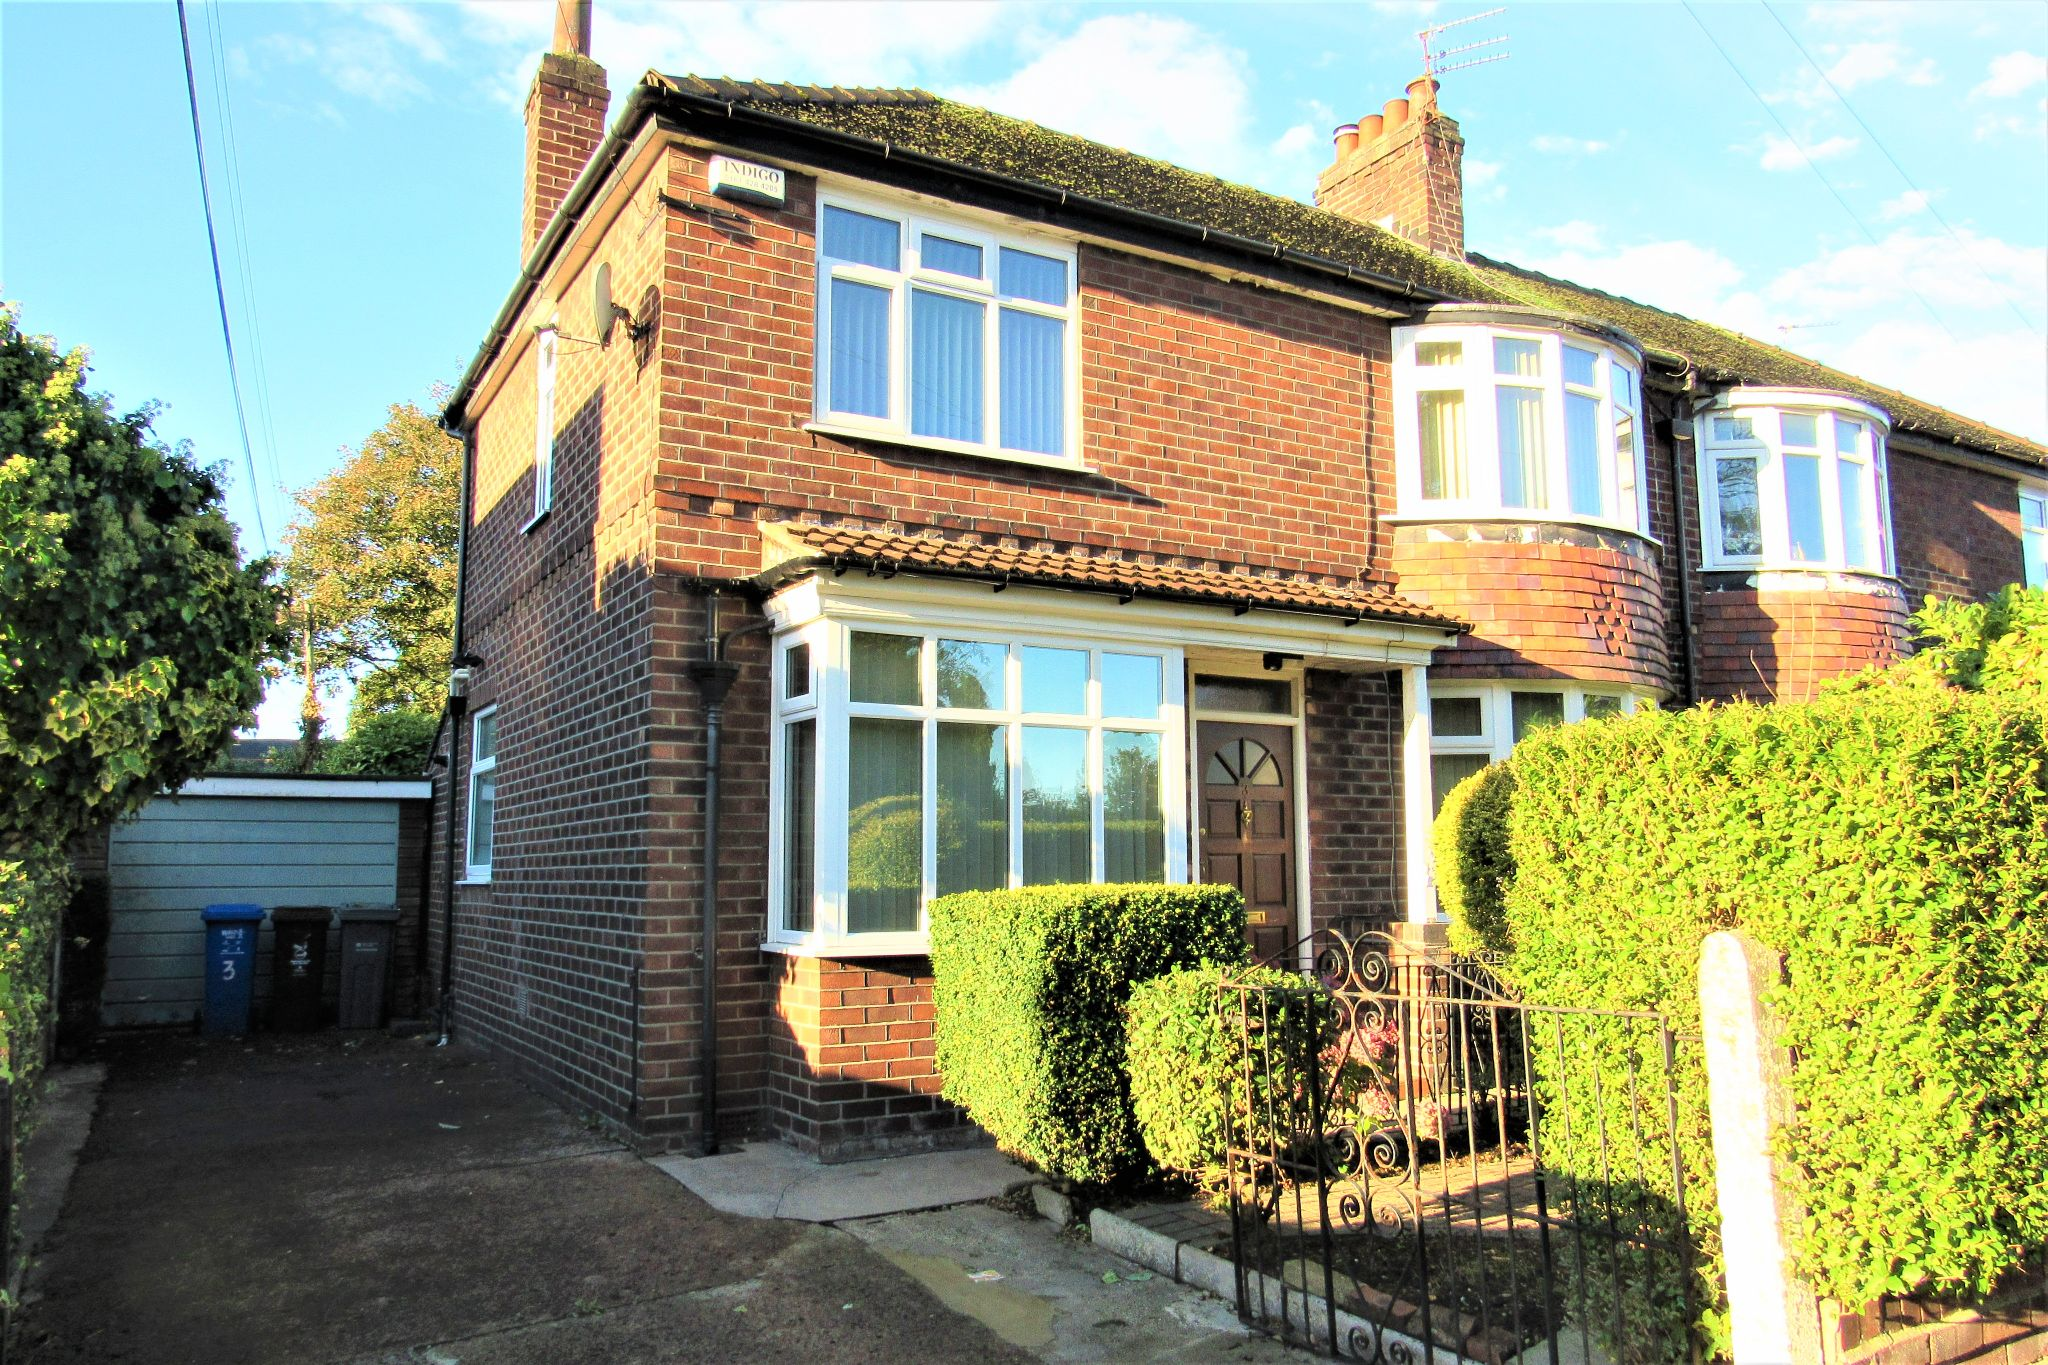 3 bedroom semi-detached house For Sale in Manchester - Photograph 5.